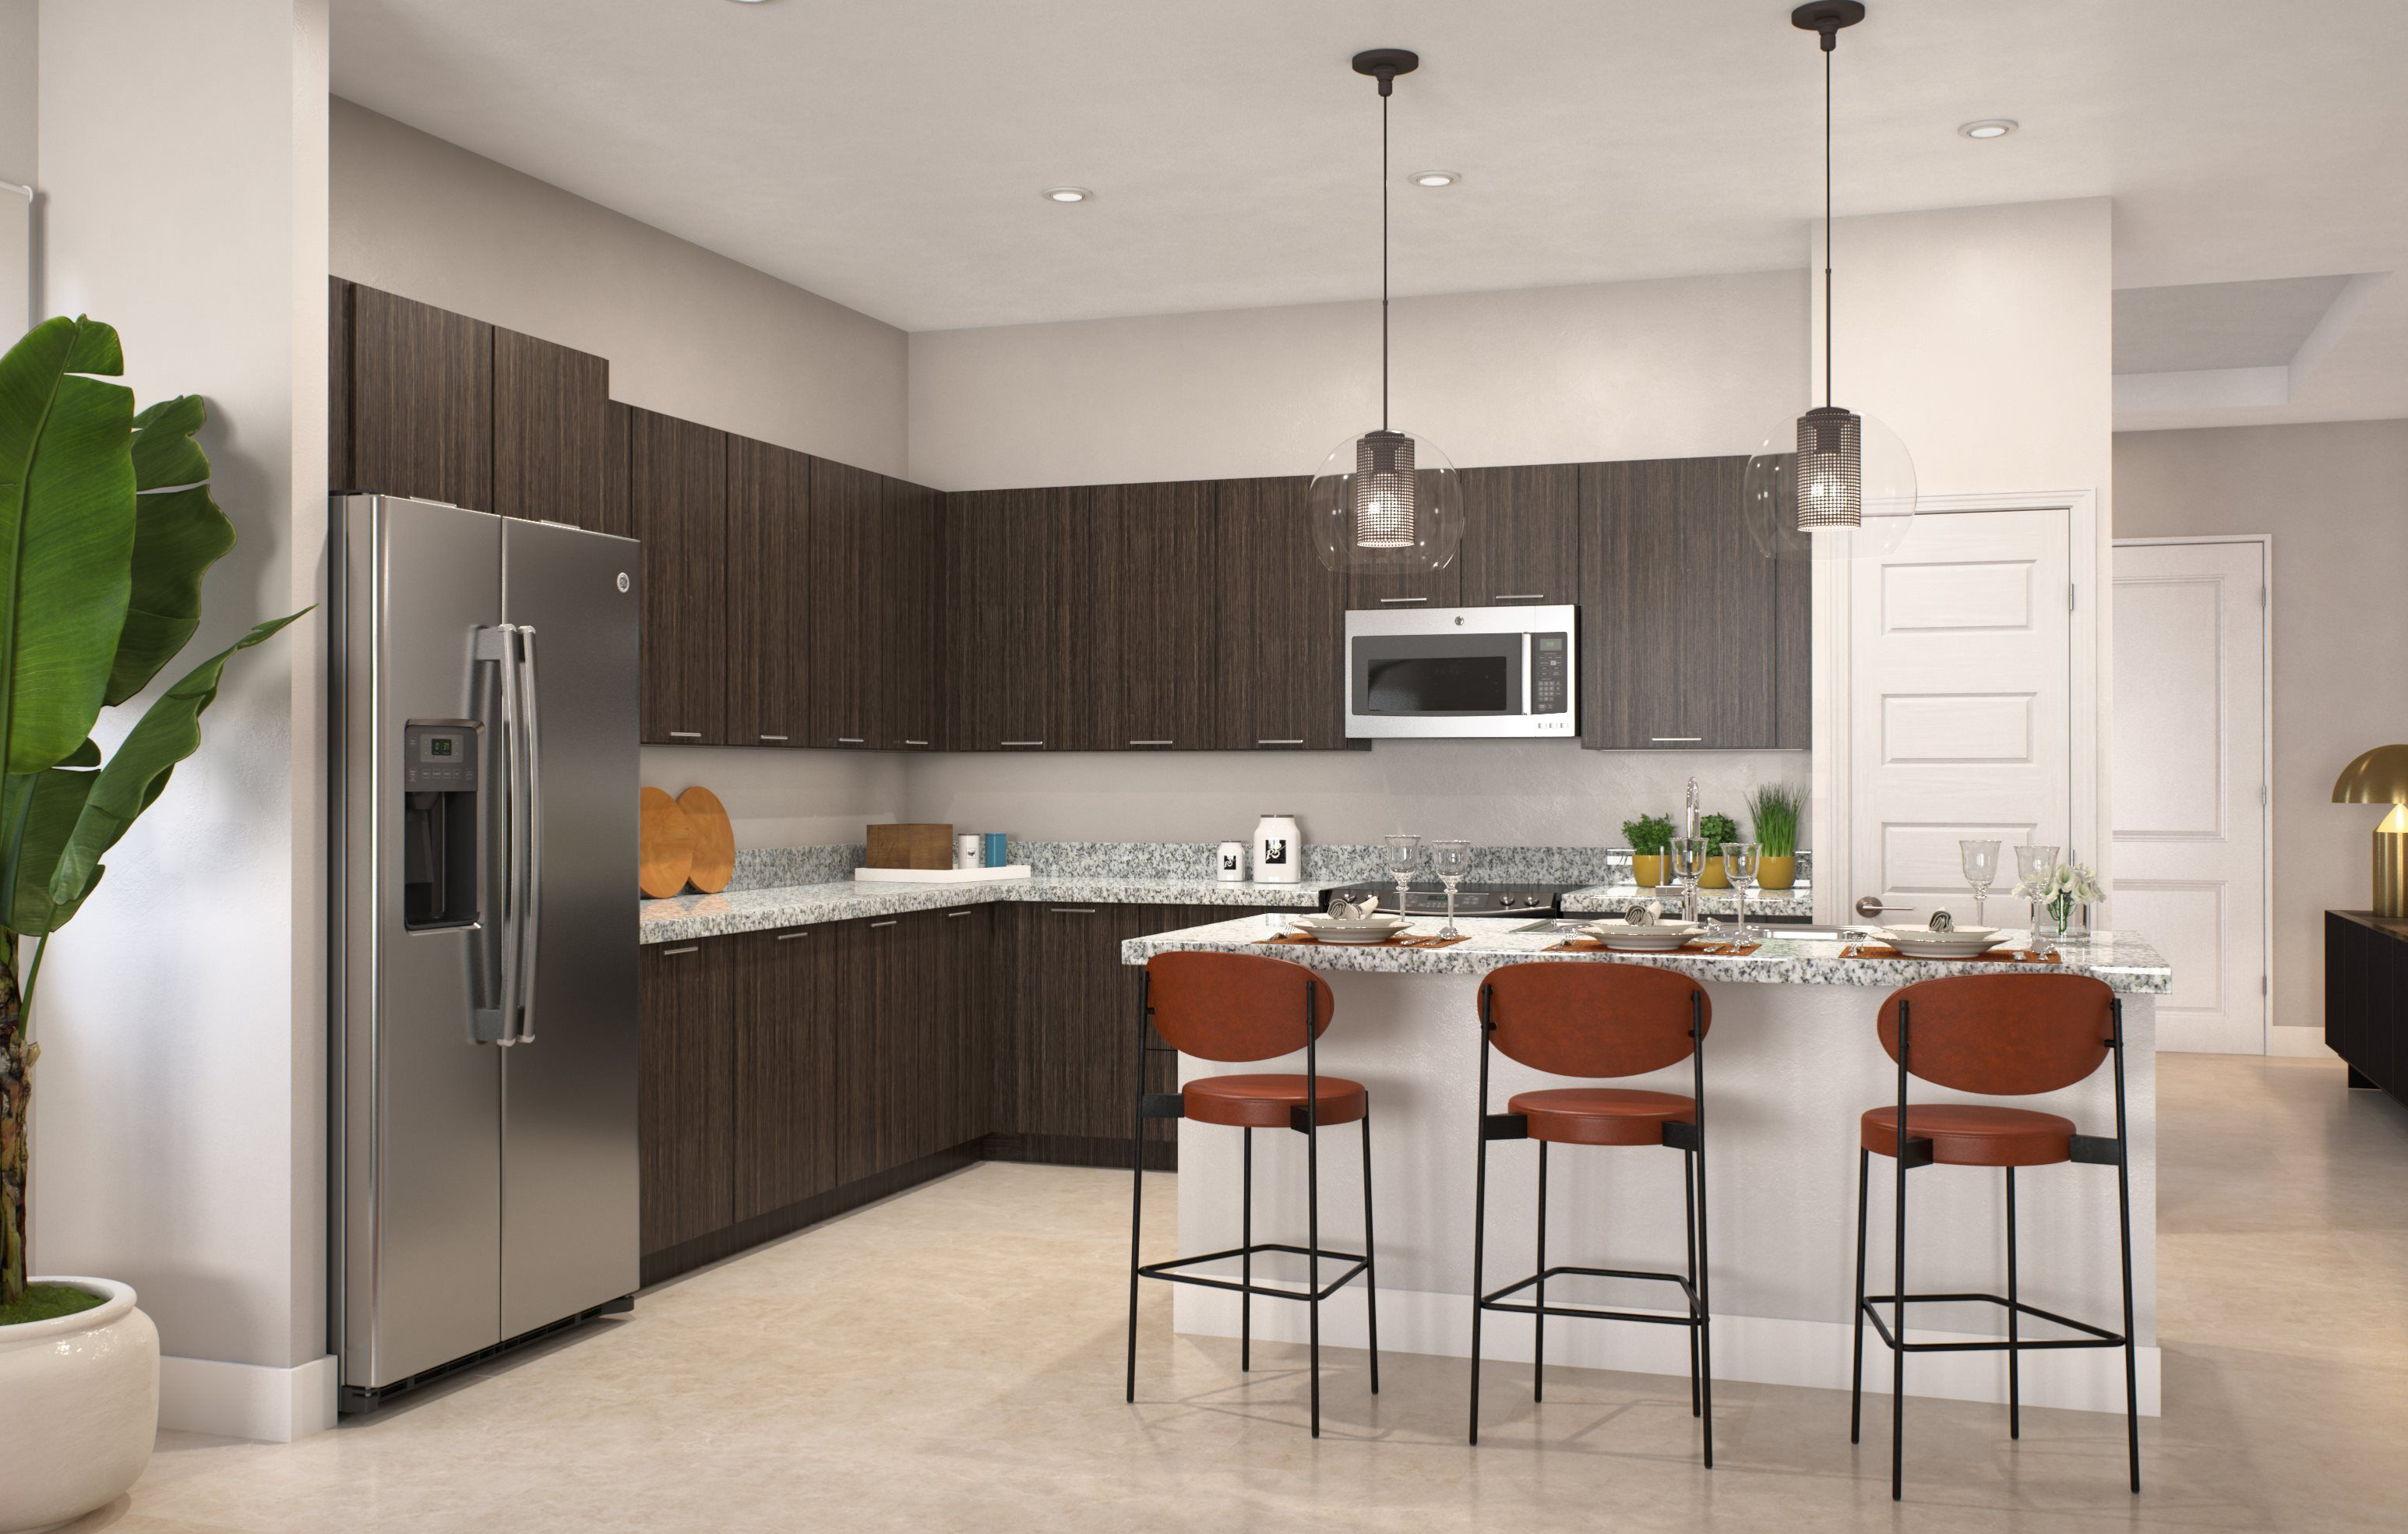 Kitchen featured in the Alameda By Lennar in Broward County-Ft. Lauderdale, FL